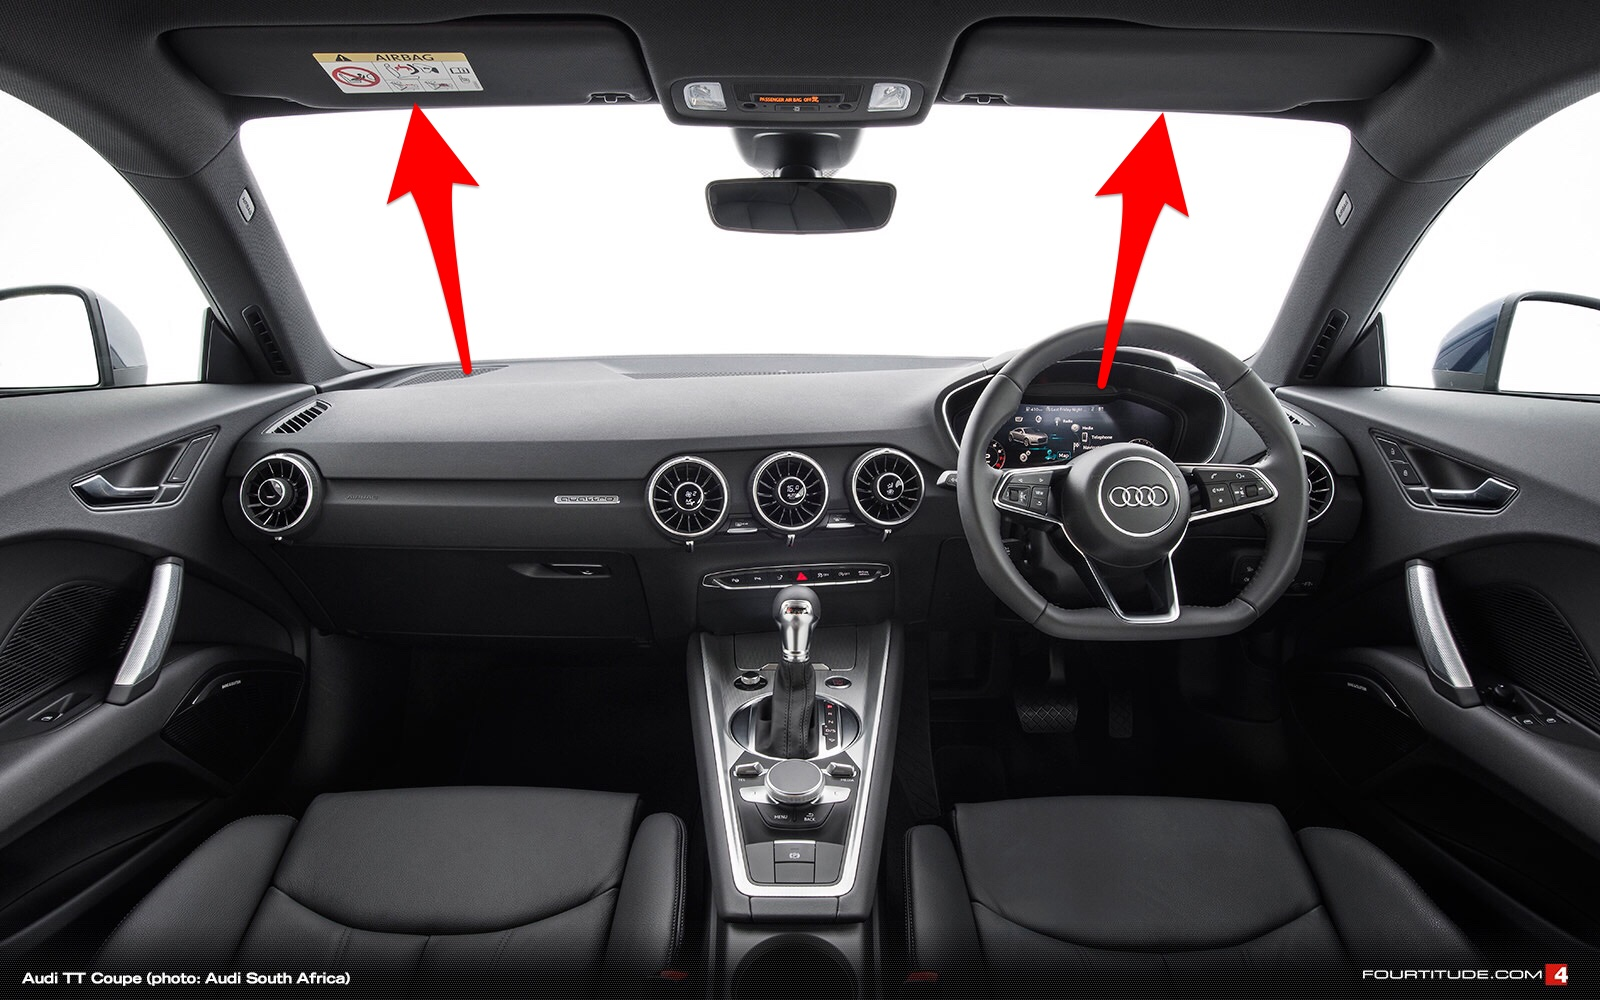 The Audi TT Forum • View topic - Left Ride driving is Sun visor ... 9a5e0a3a093